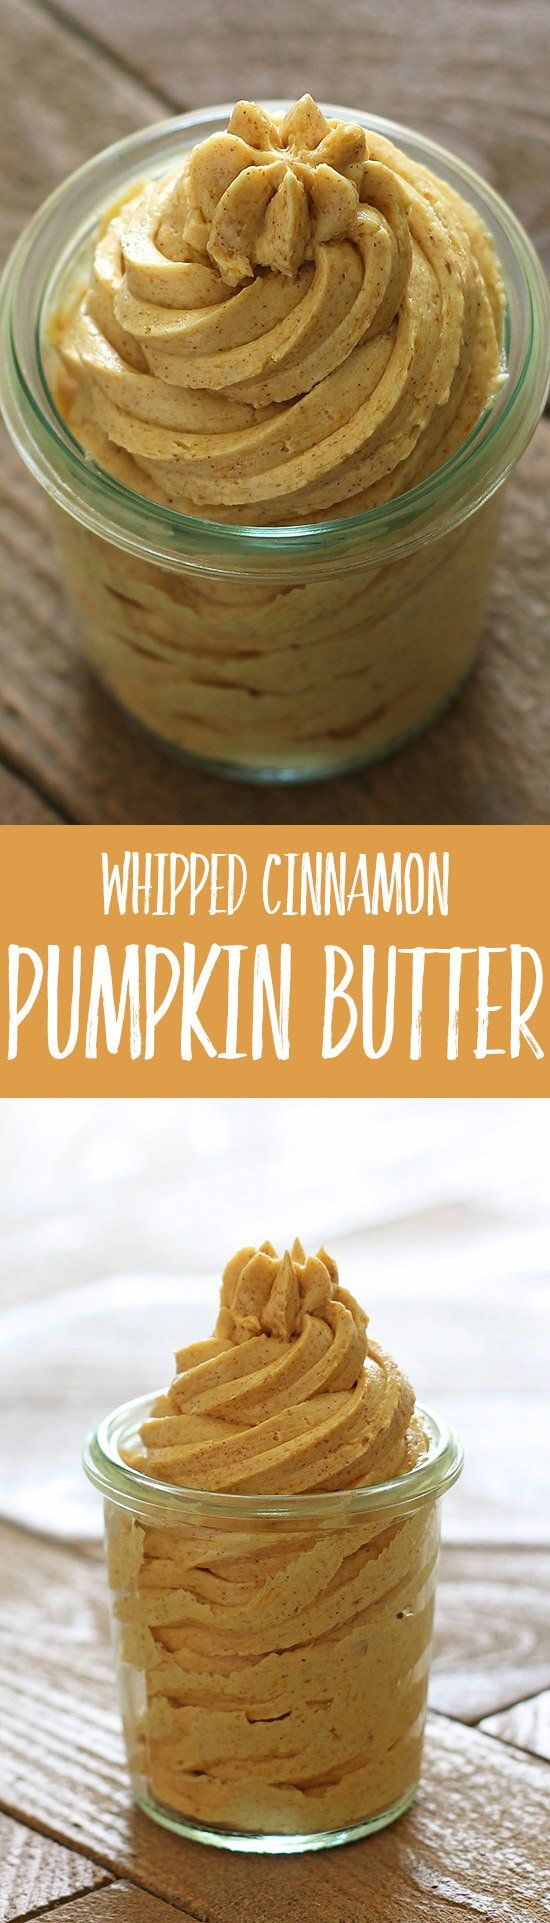 hipped Cinnamon Pumpkin Butter is bursting with fall flavors and perfect on bread, muffins, pancakes, waffles, and just about anything else! Make it ahead and keep it on hand!